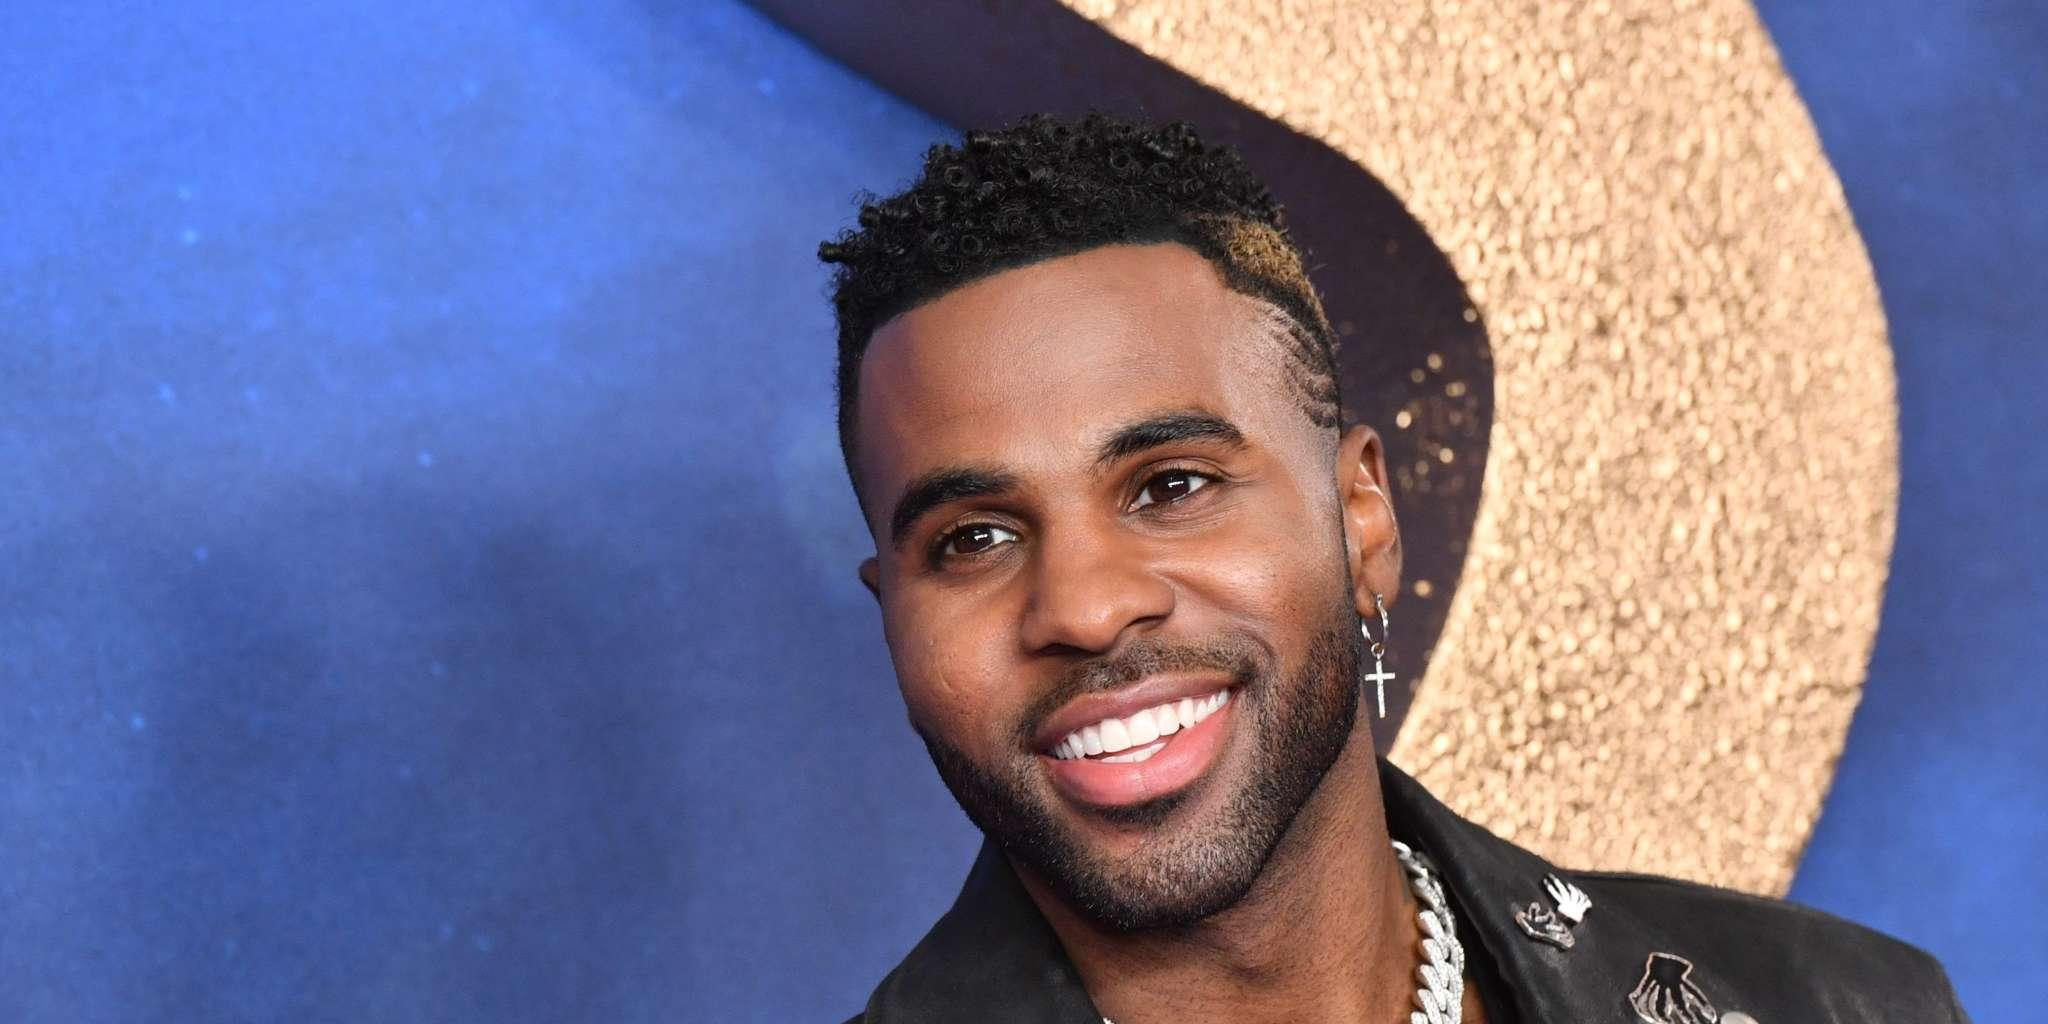 Jason Derulo Reveals How Much He Makes To Post Tik Toks And Suddenly Fans Don't Find Him Corny Anymore